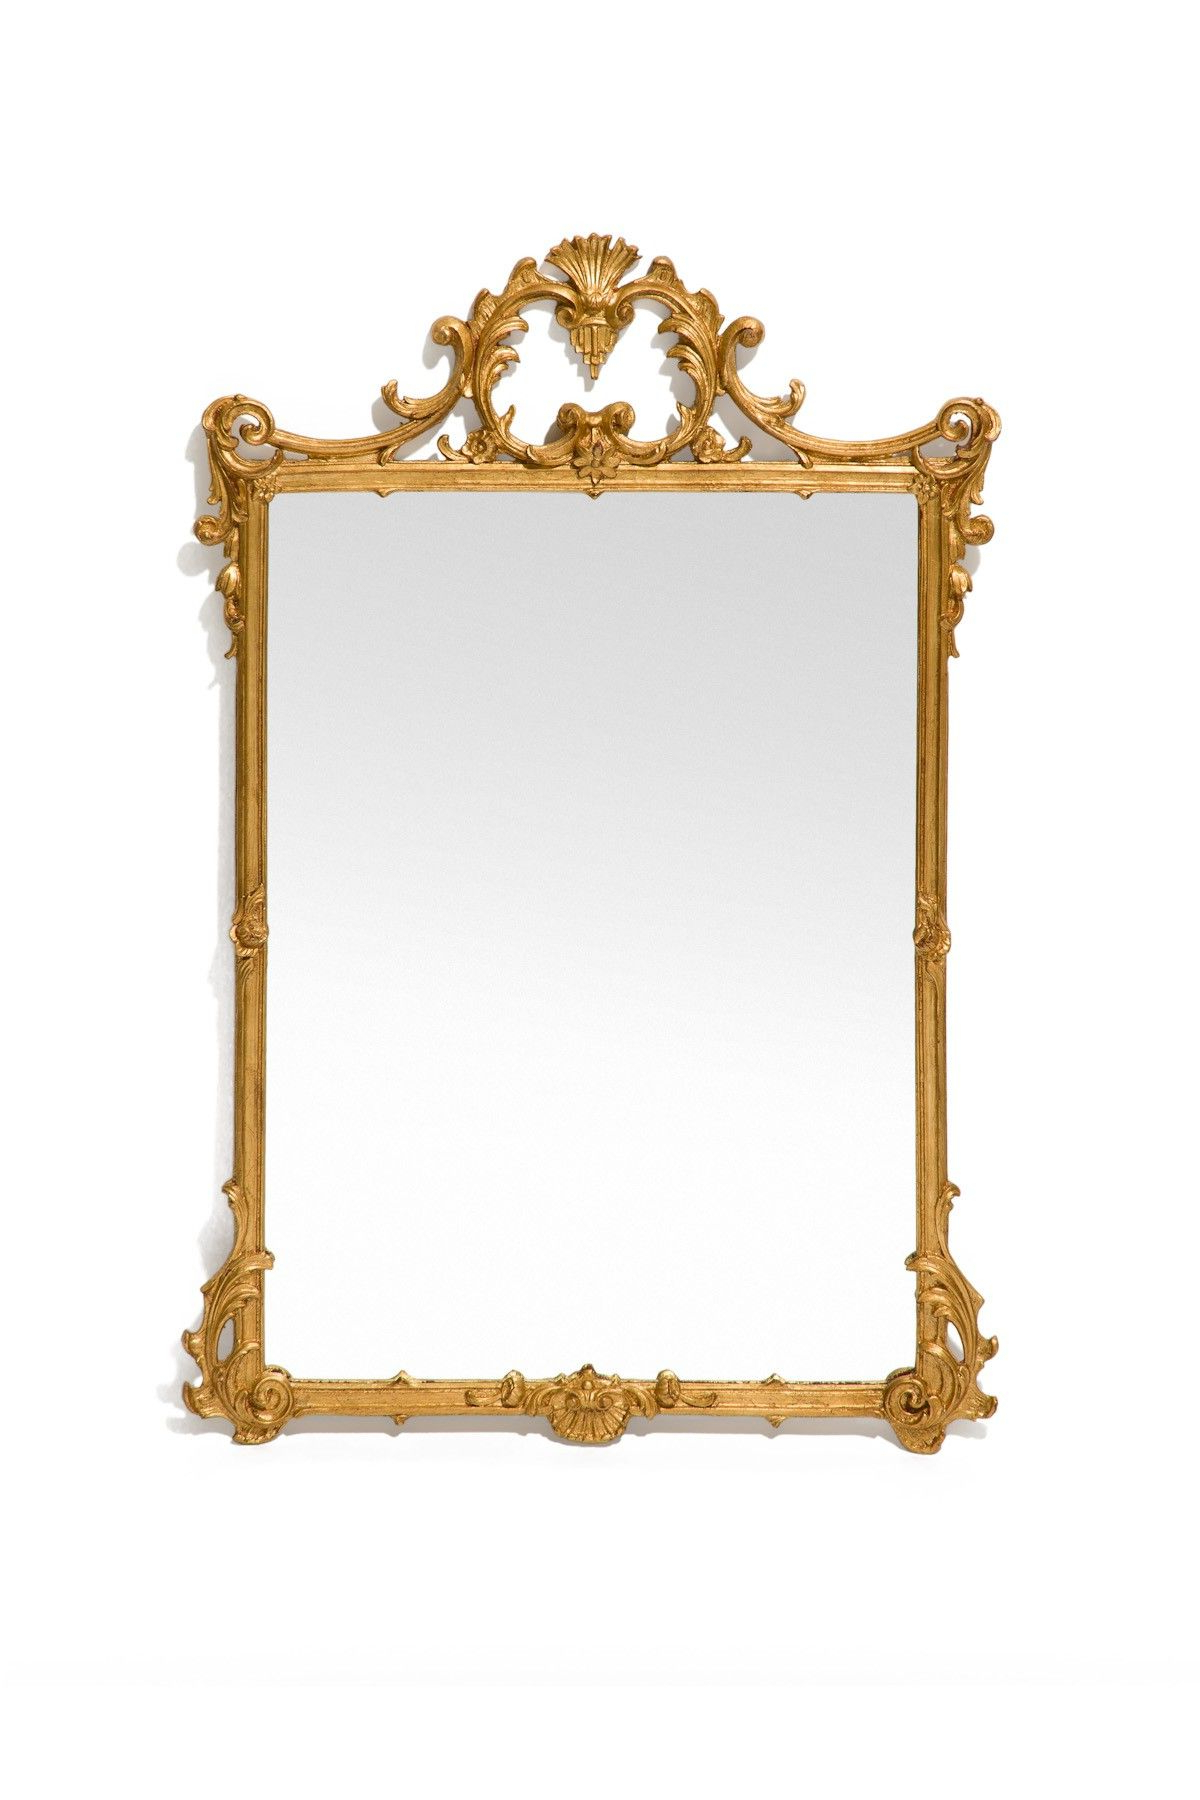 Elegant Wall Mirrors Pertaining To Most Current The Well Appointed House – Luxury Home Decor  Elegant Wall Mirror In (Gallery 5 of 20)